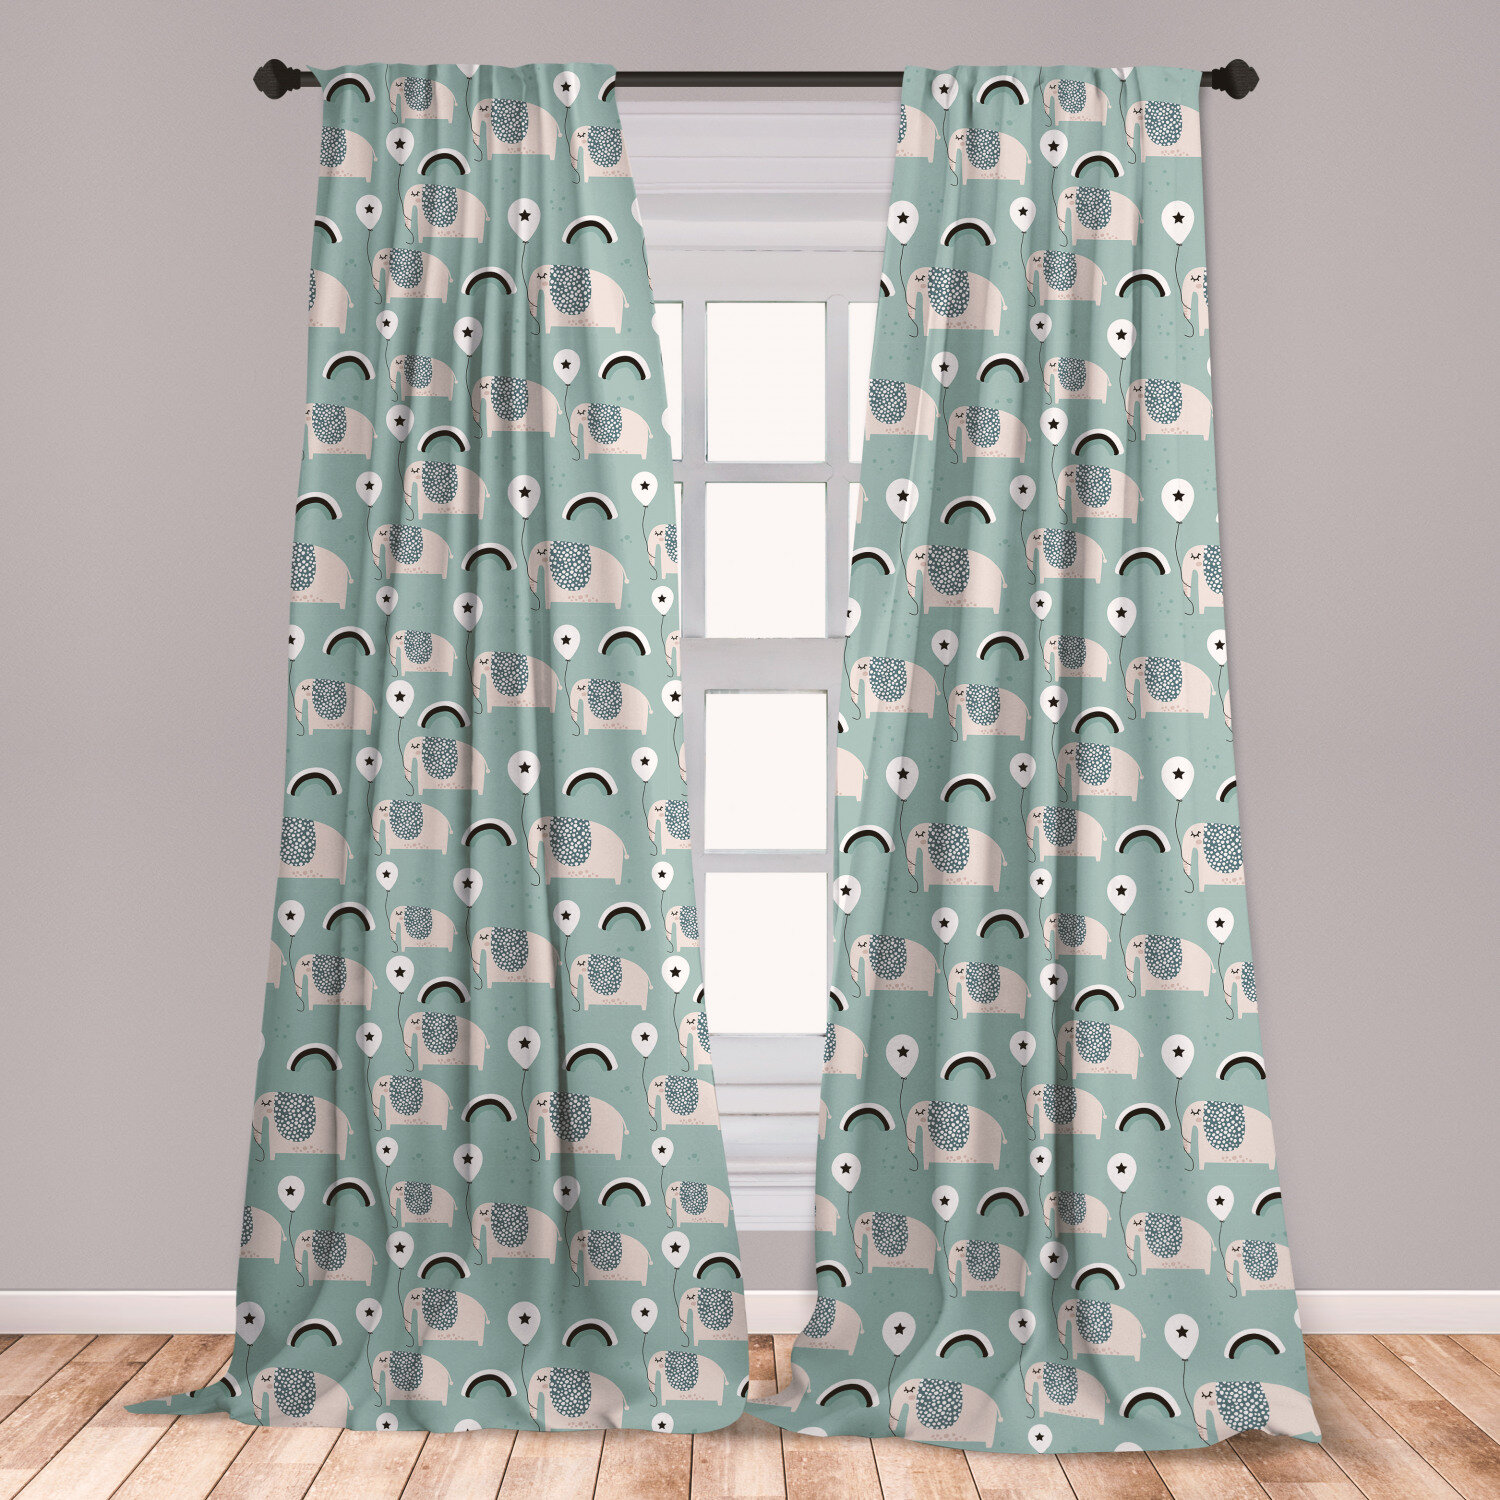 East Urban Home Elephant Room Darkening Rod Pocket Curtain Panels Wayfair